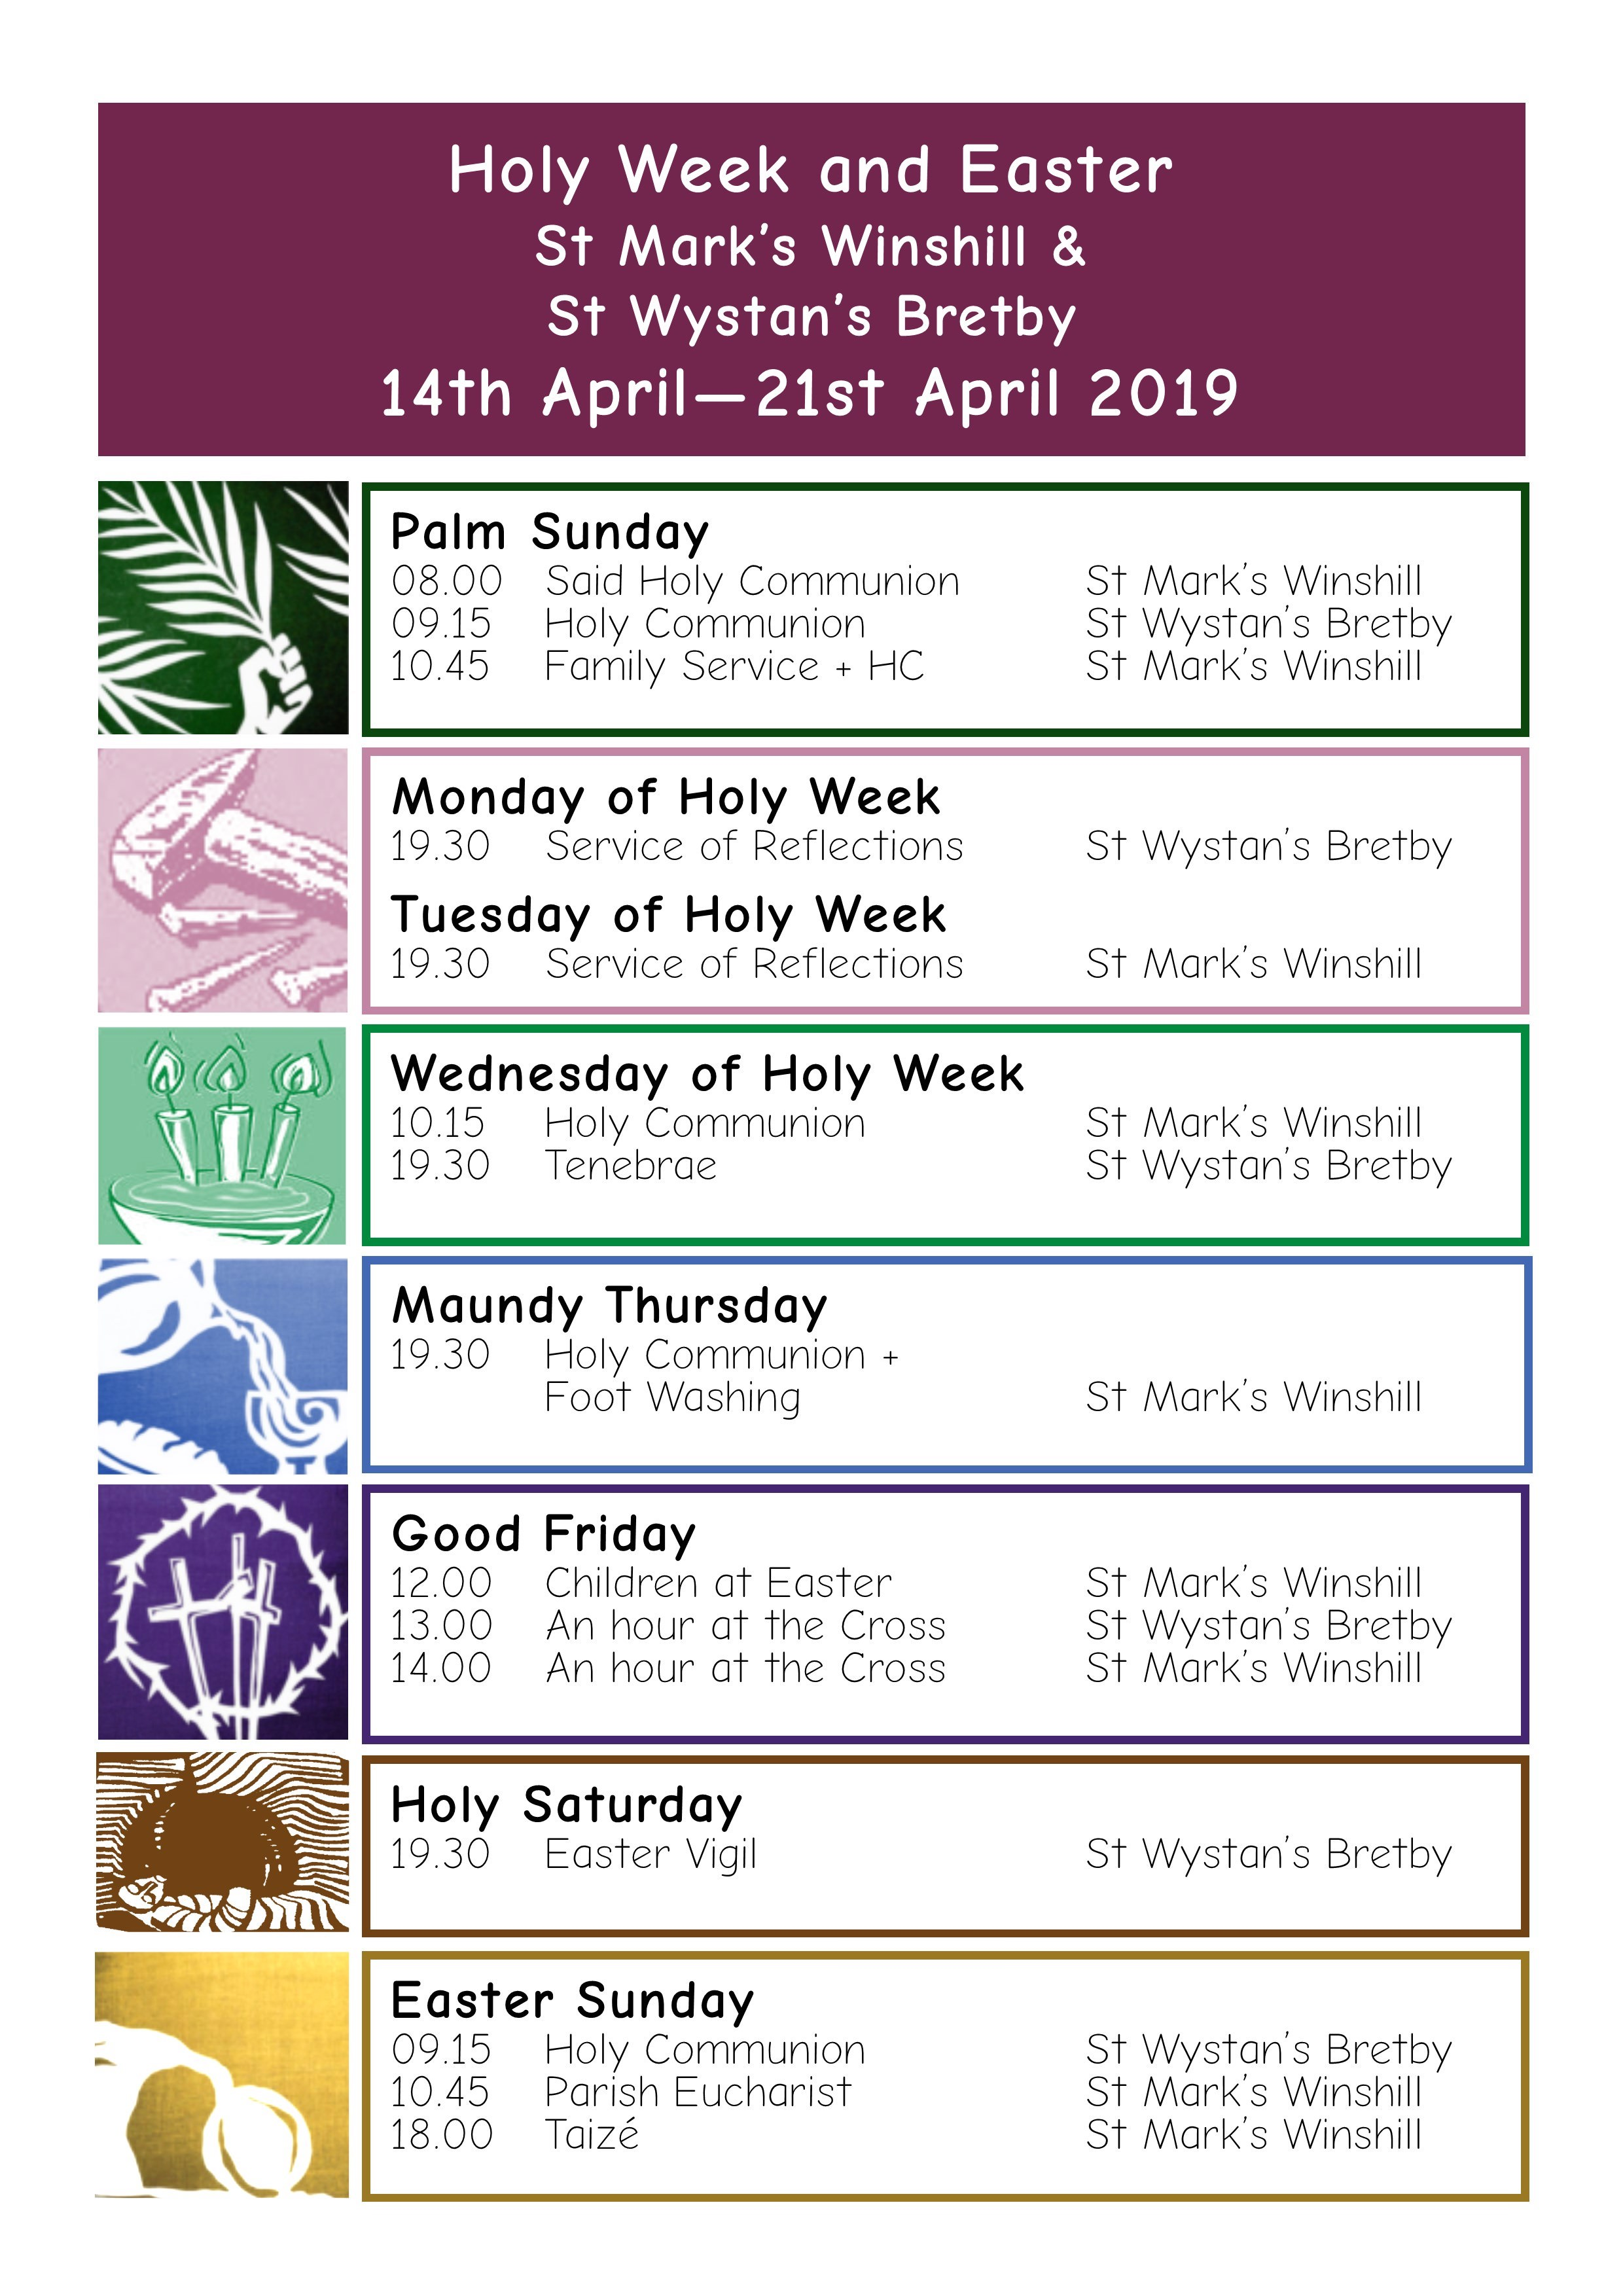 Holyweek and Easter Timetable 2019 A4 Poster